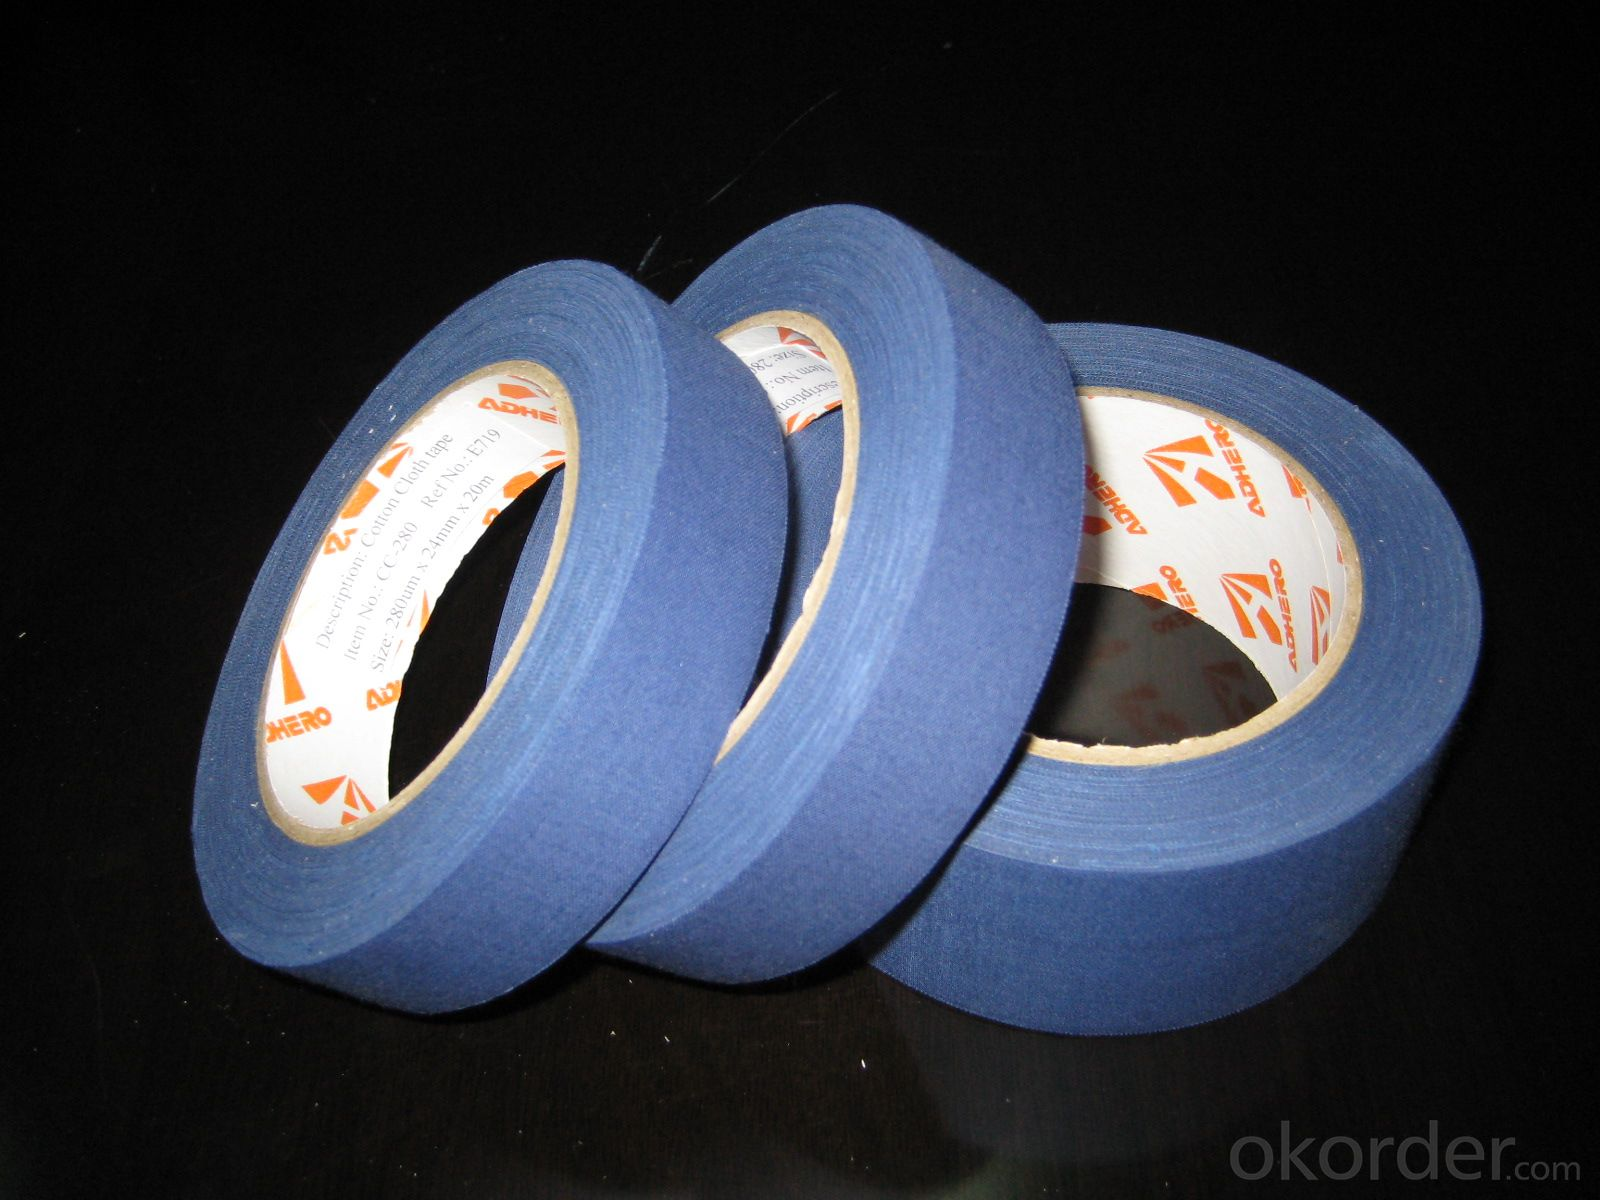 The biggest manufacturer of wholesale durability high quality duct cloth tape